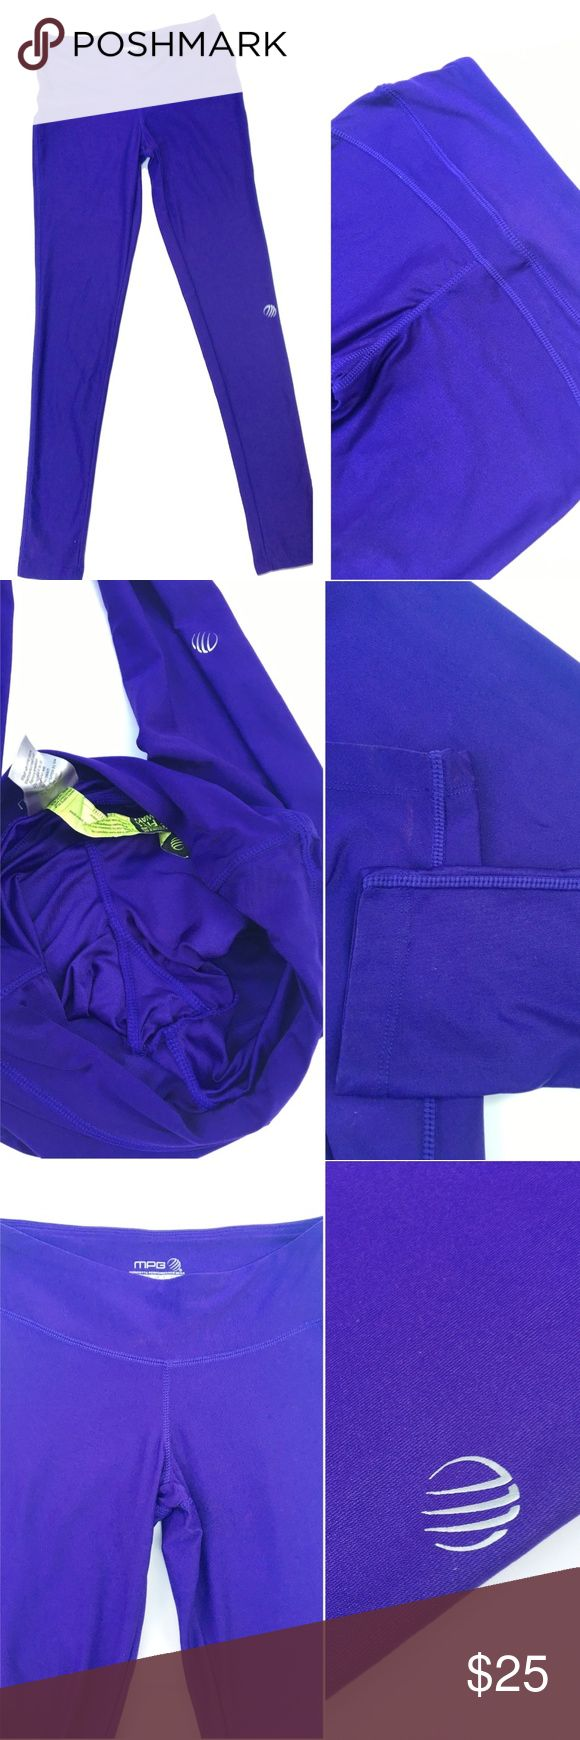 """MPG Athletic Purple Workout Legging Pants Yoga XS MPG Women's Leggings Purple  Stretch Leggings, Elastic Waist, Flattering Waistband.  Perfect for yoga or running around town! Size: XS X Small  Waist: 12.25""""  Inseam: 27.25"""" Rise: 8""""  Length: 34.5""""  Condition: NWOT. Comes from a pet and smoke free environment!  Please review pictures and contact me if you have any questions. Color: Purple Pattern: Solid Material: 90% Nylon, 10% Spandex Country: China Care: Machine WT: 0.09 CSKU: WA020…"""